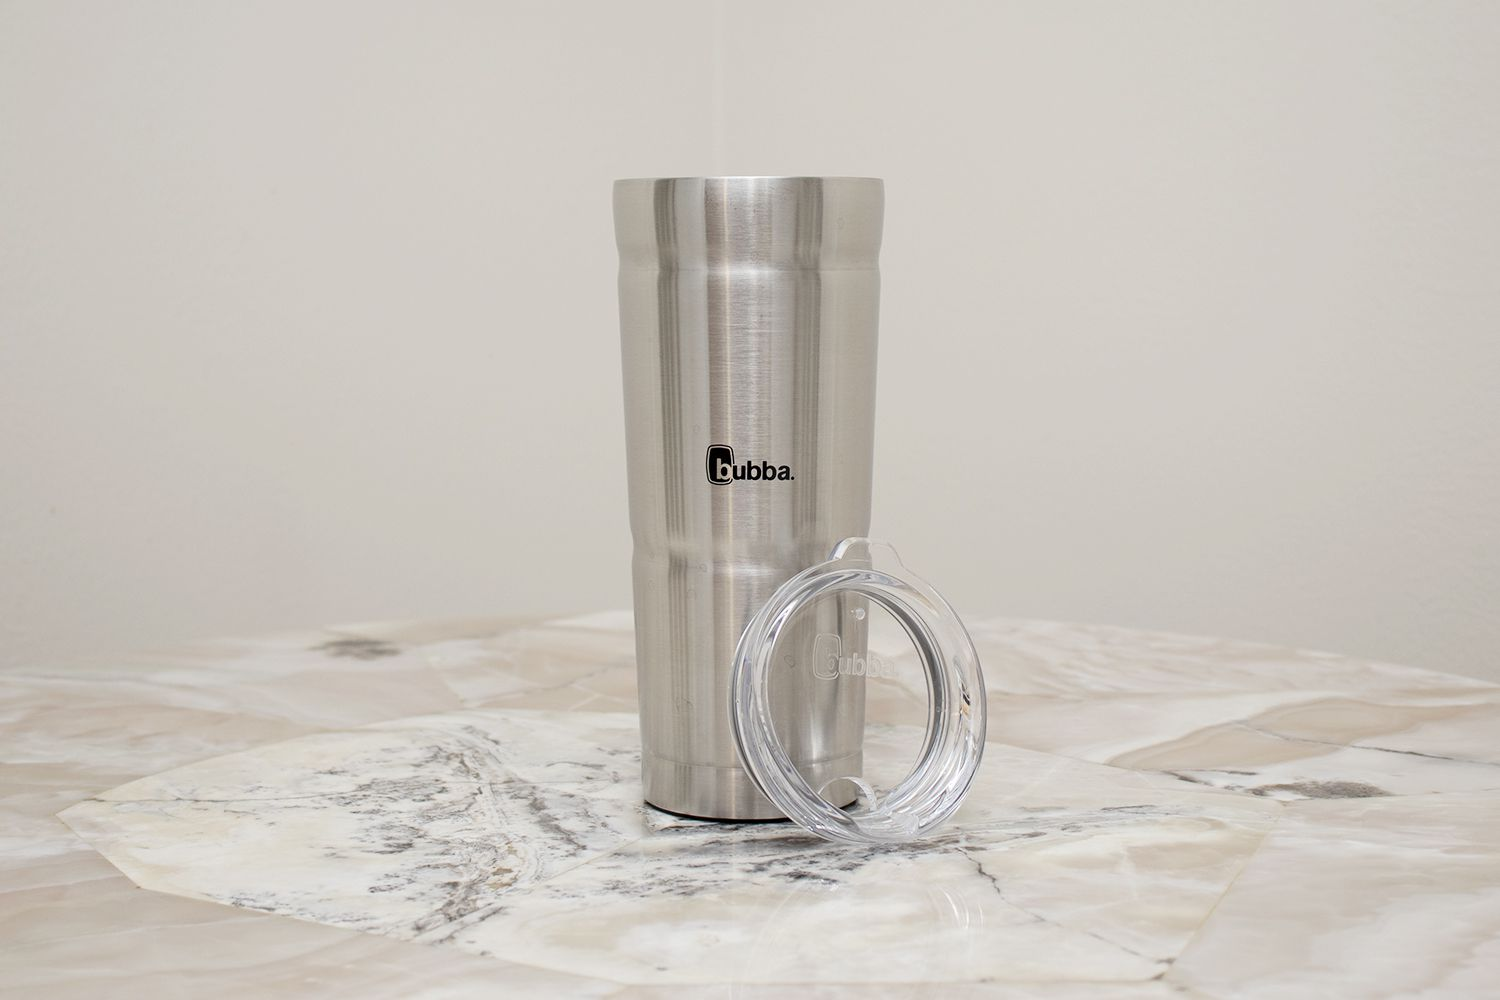 Bubba Envy Insulated Stainless Steel Tumbler